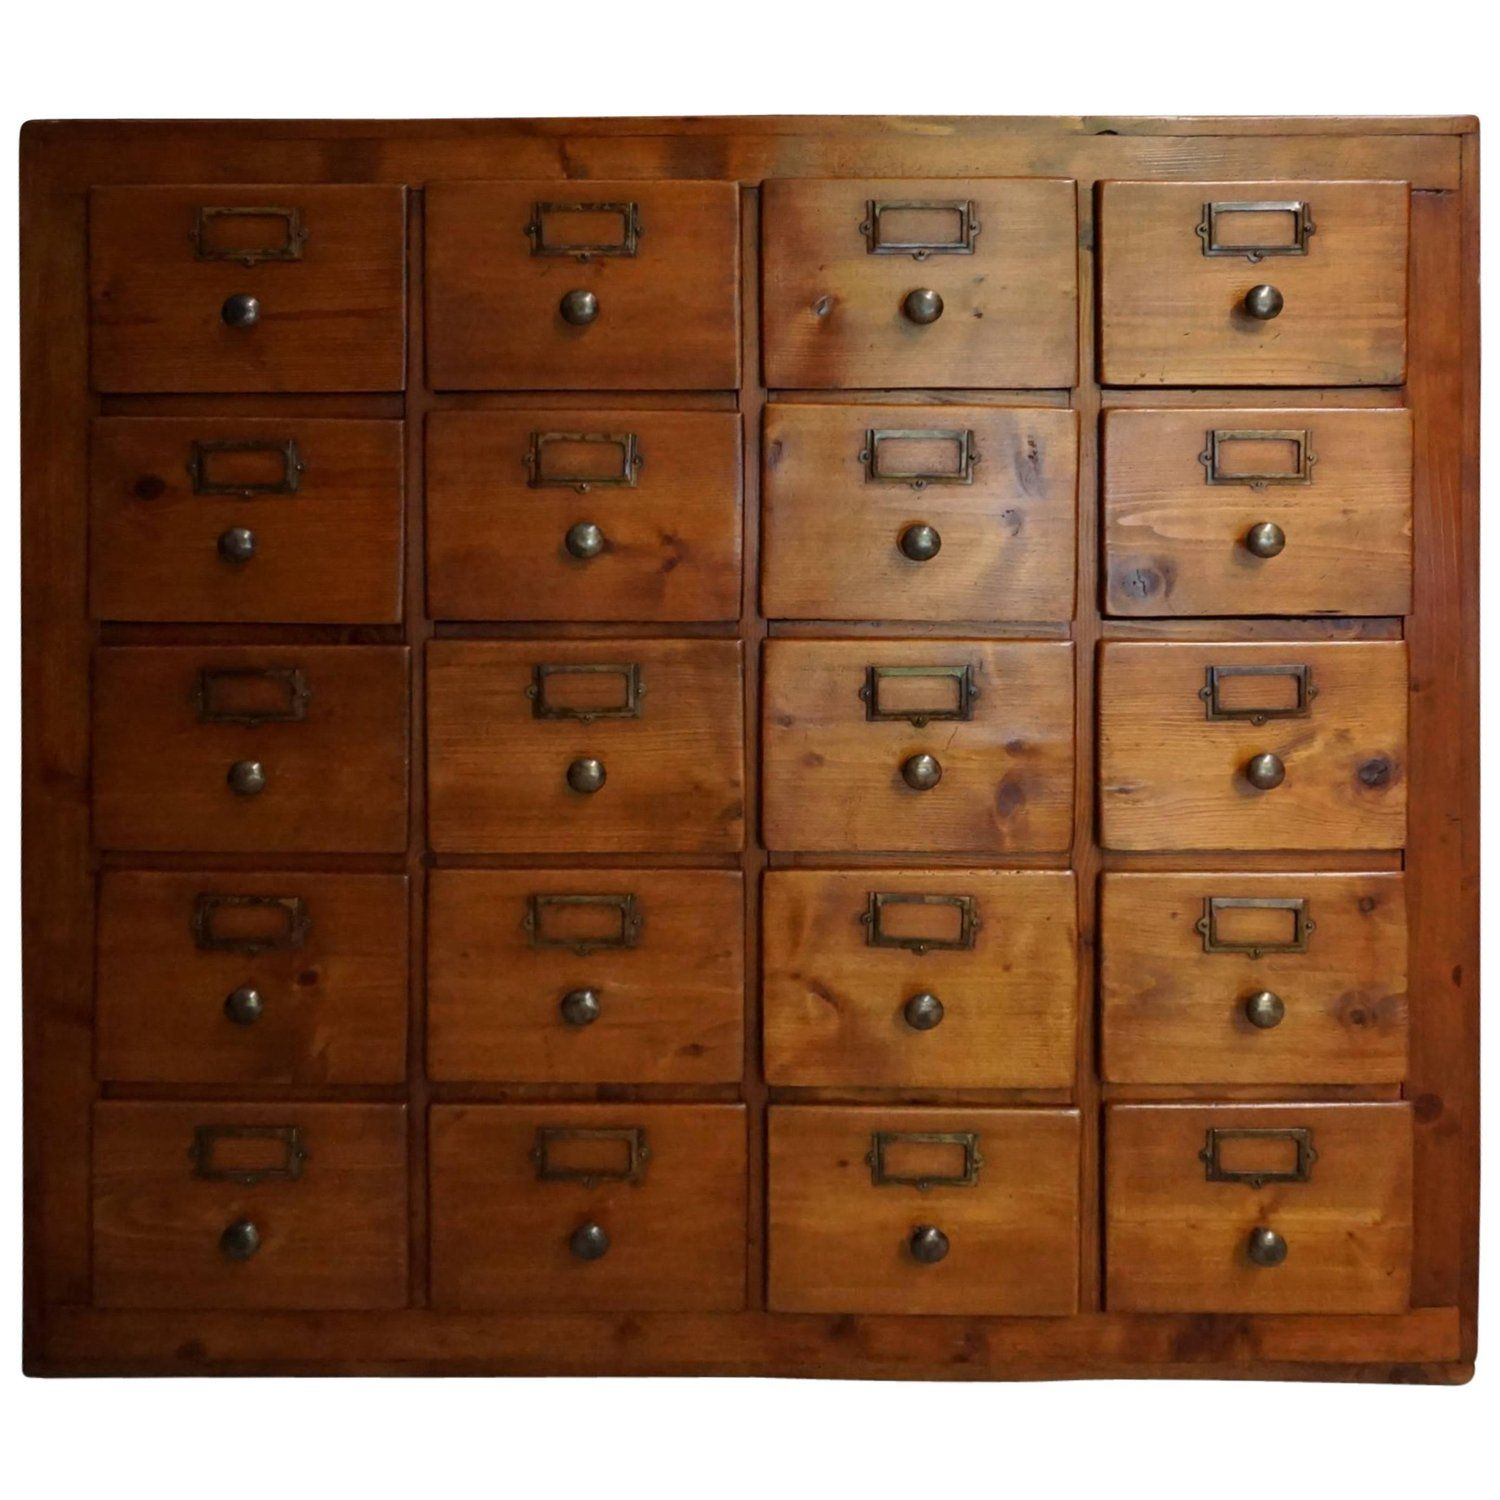 Vintage French Pine Apothecary Cabinet 1930s Apothecary Cabinet